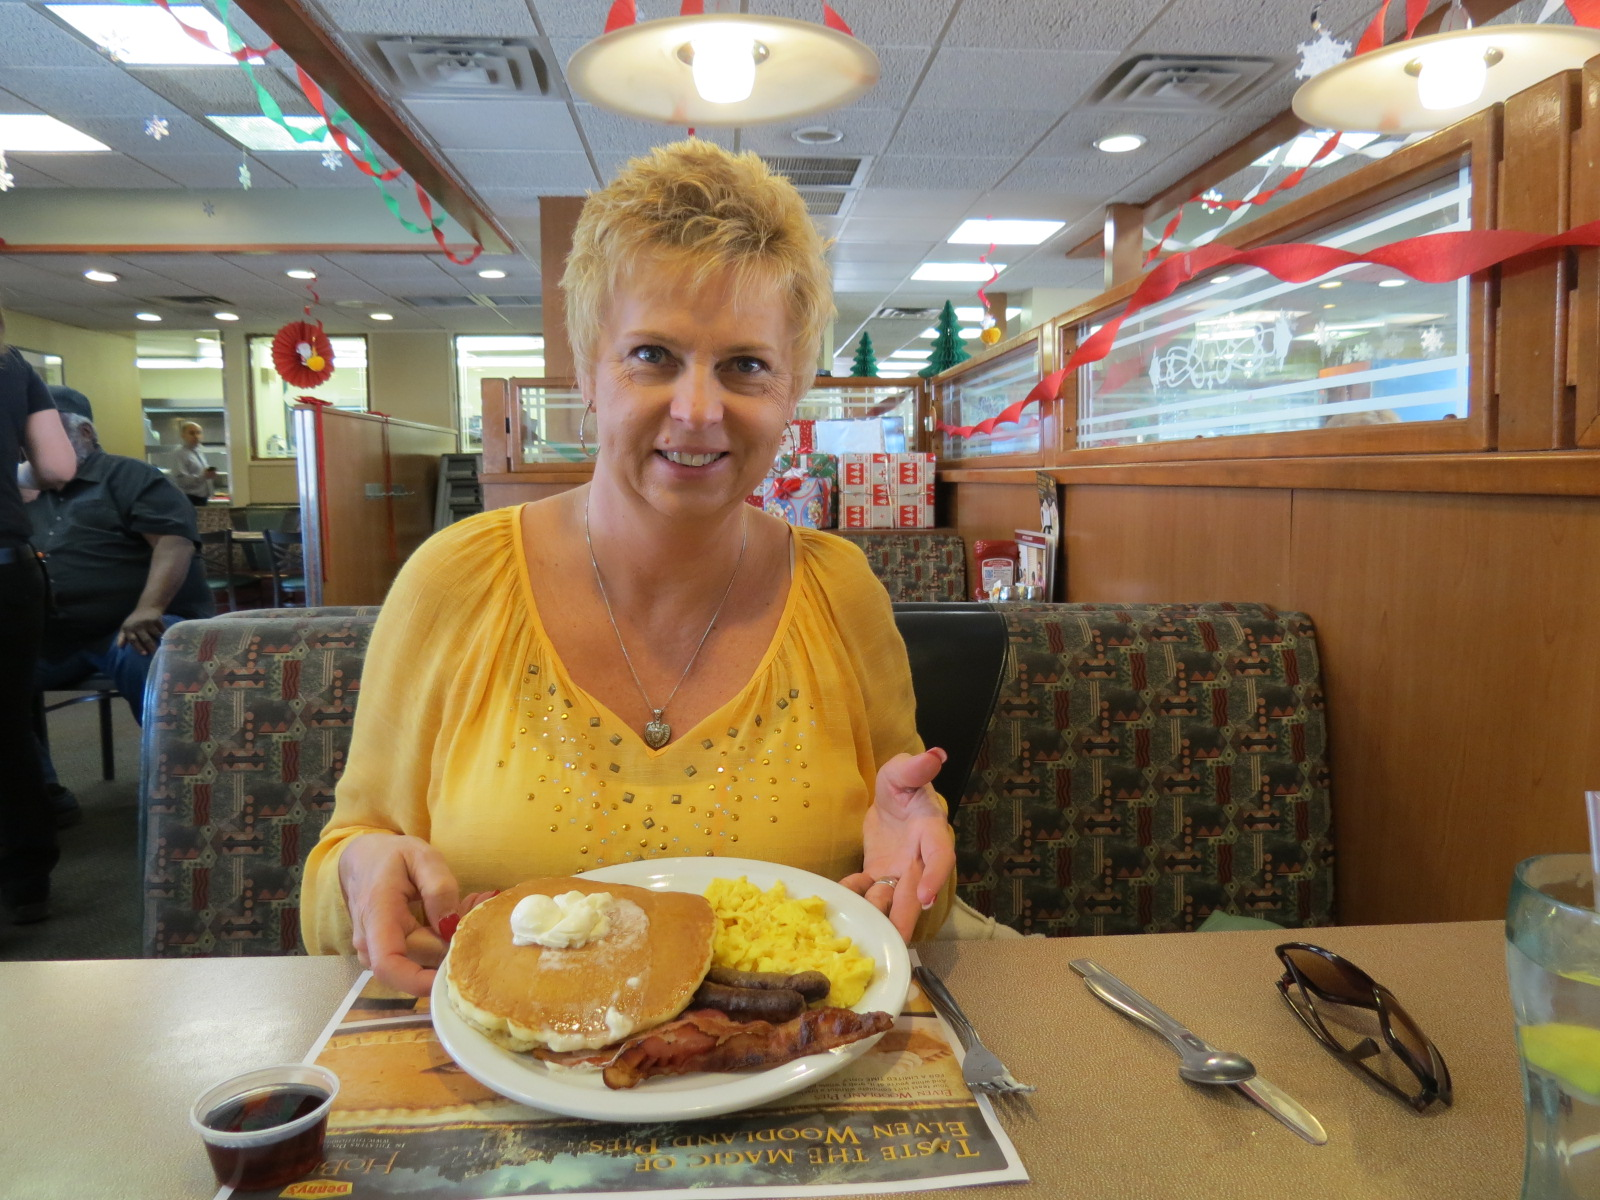 Free Grand Slam Breakfast at Denny's for my birthday!